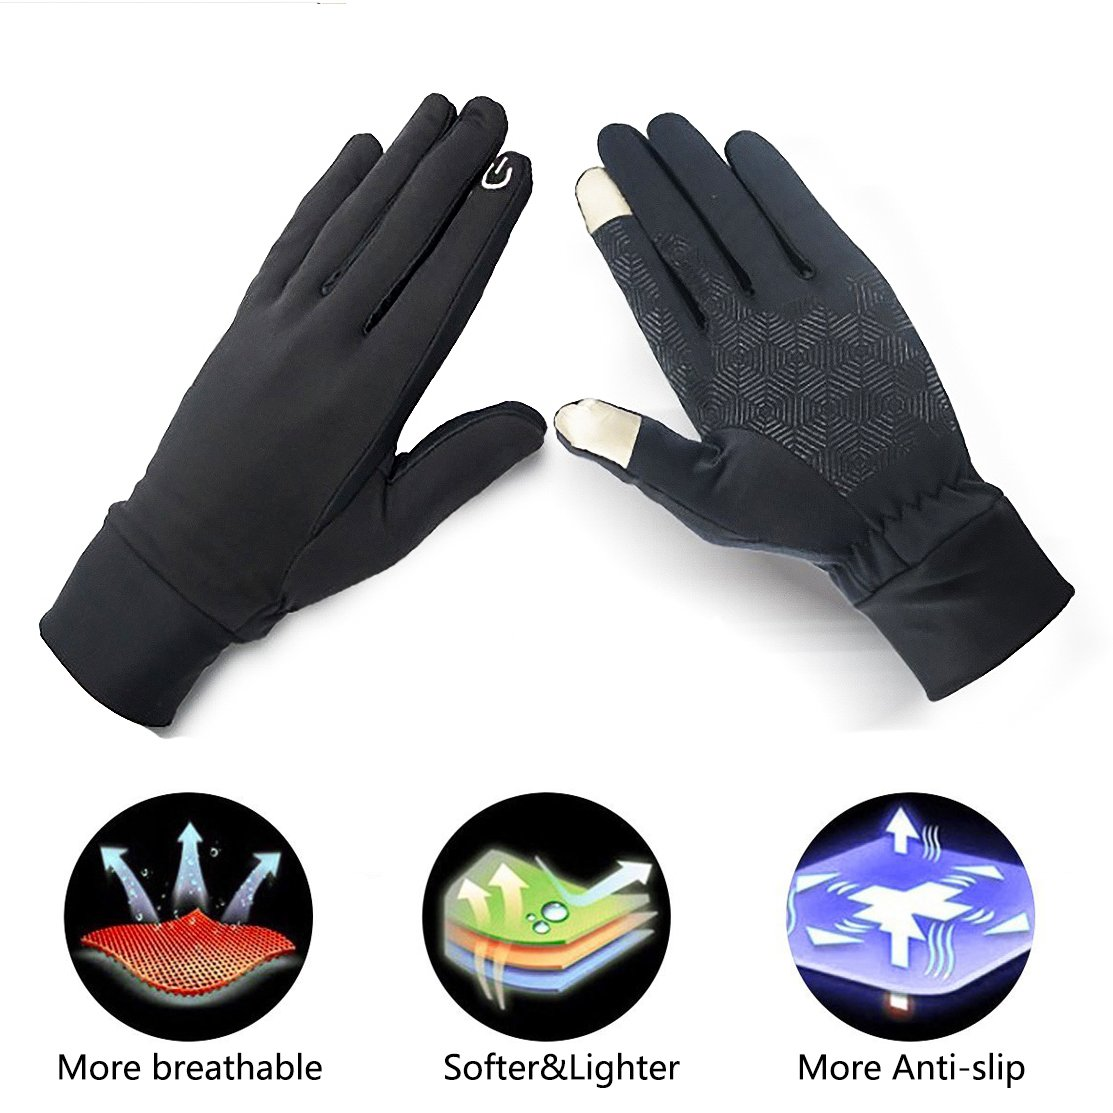 Touch Screen Gloves, Thick Warmest Running Sports Gloves Suitable for Smartphones and Touchscreen Devices,Outdoors, Cycling, Running, Texting Fits Men and Women